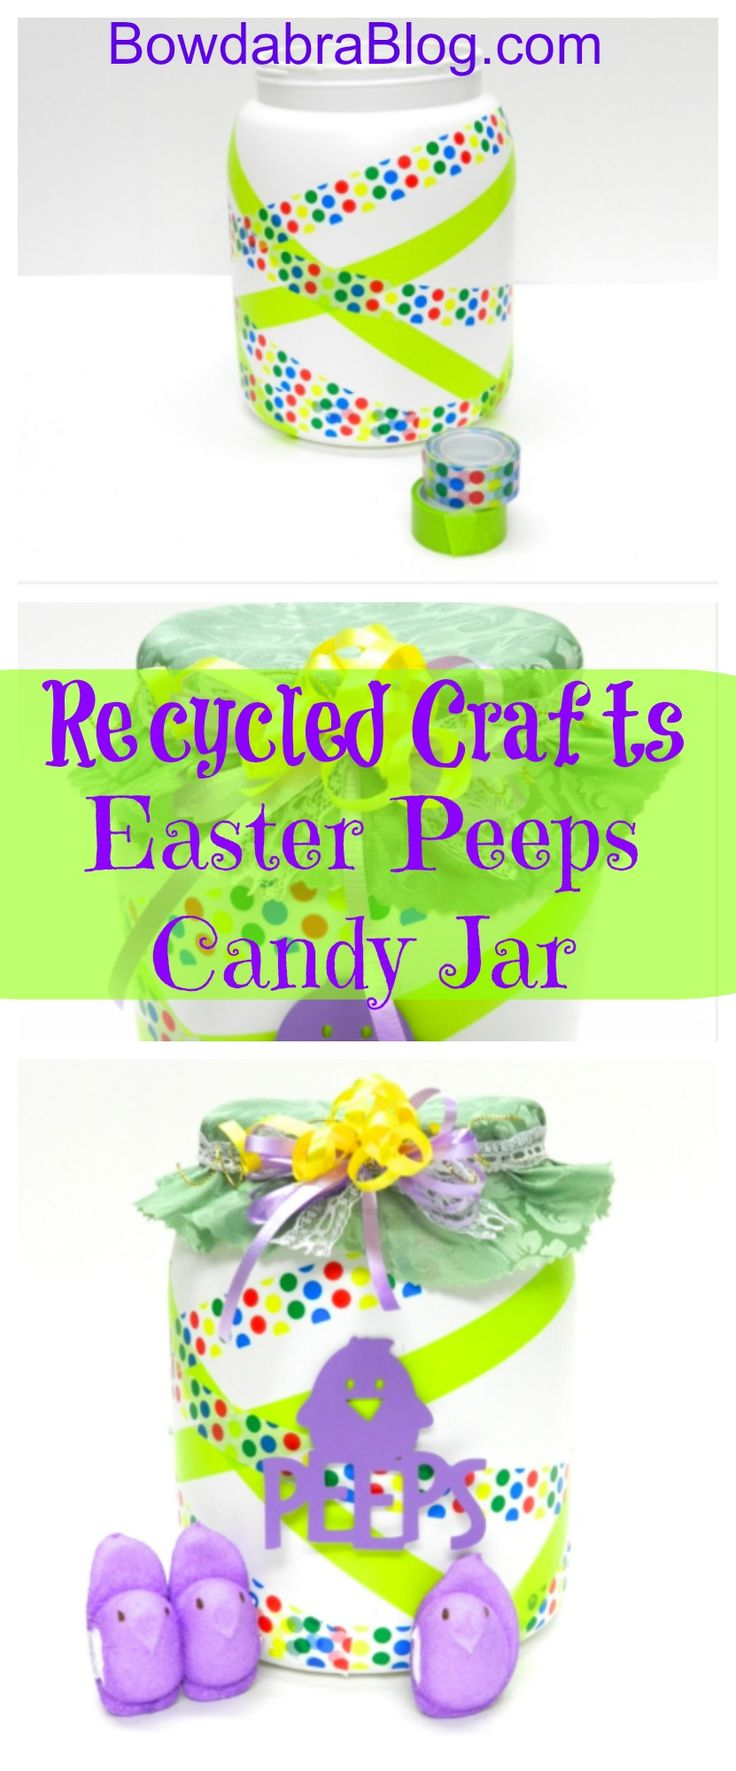 Craft containers with lids - Store Your Easter Peeps In An Airtight Container Using A Recycled Plastic Jar With Lid And